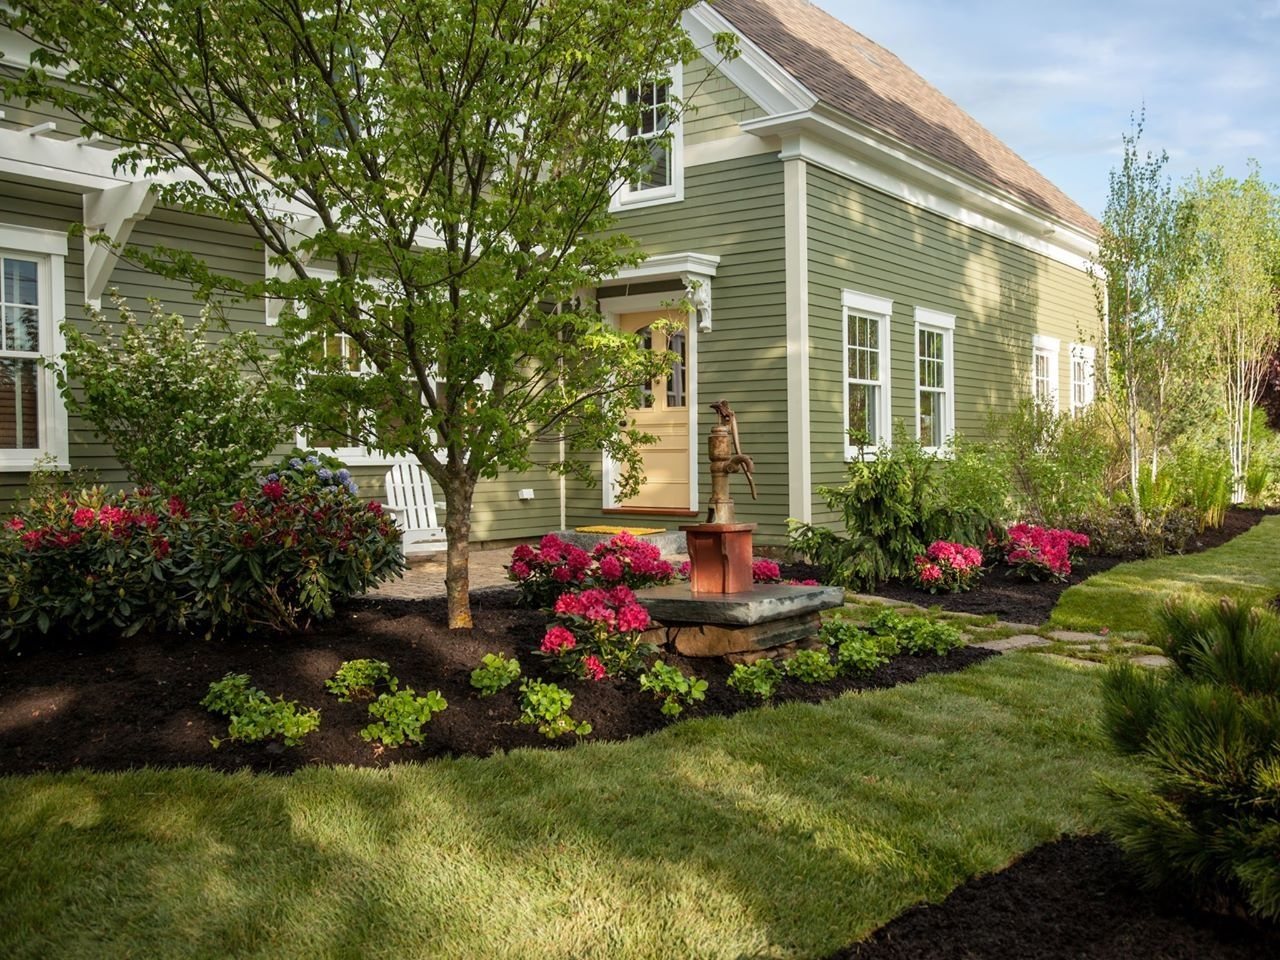 Landscaping Small Shady Yards Landscape Ideas For Small ... |Shady Yard Landscaping